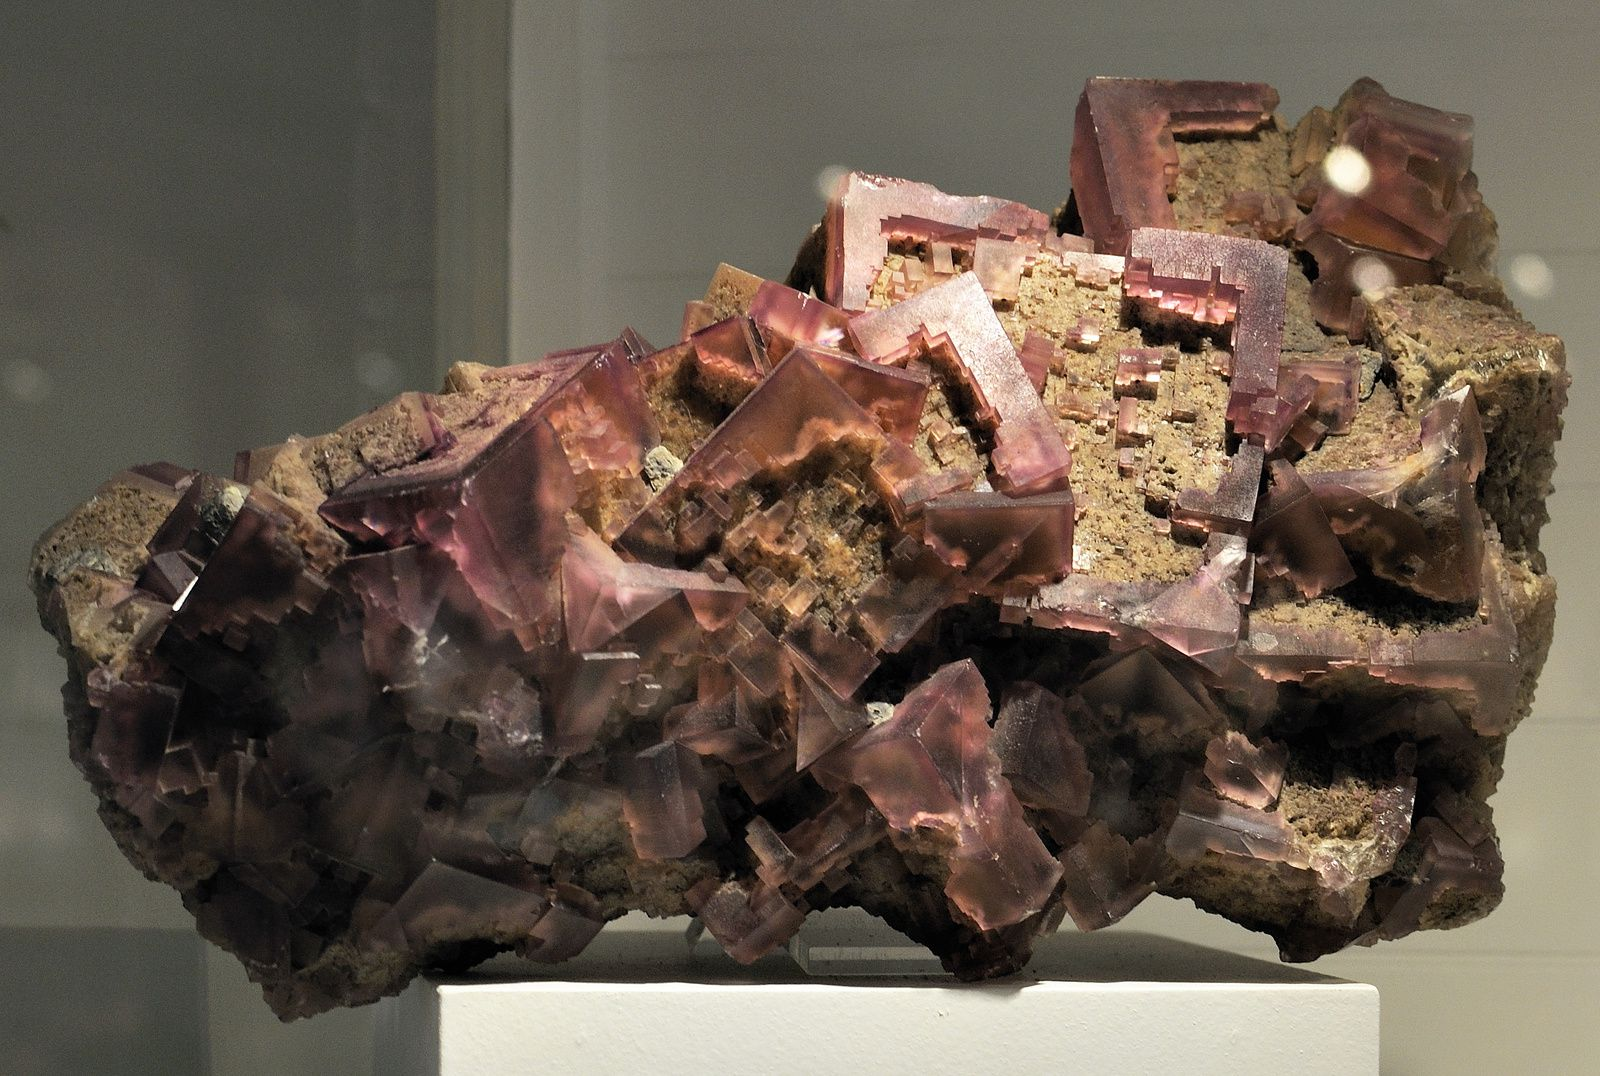 Fluorite from near Rosiclare, Hardin Co., Illinois, USA (Specimen and Photo by Harvard Museum of Natural History)